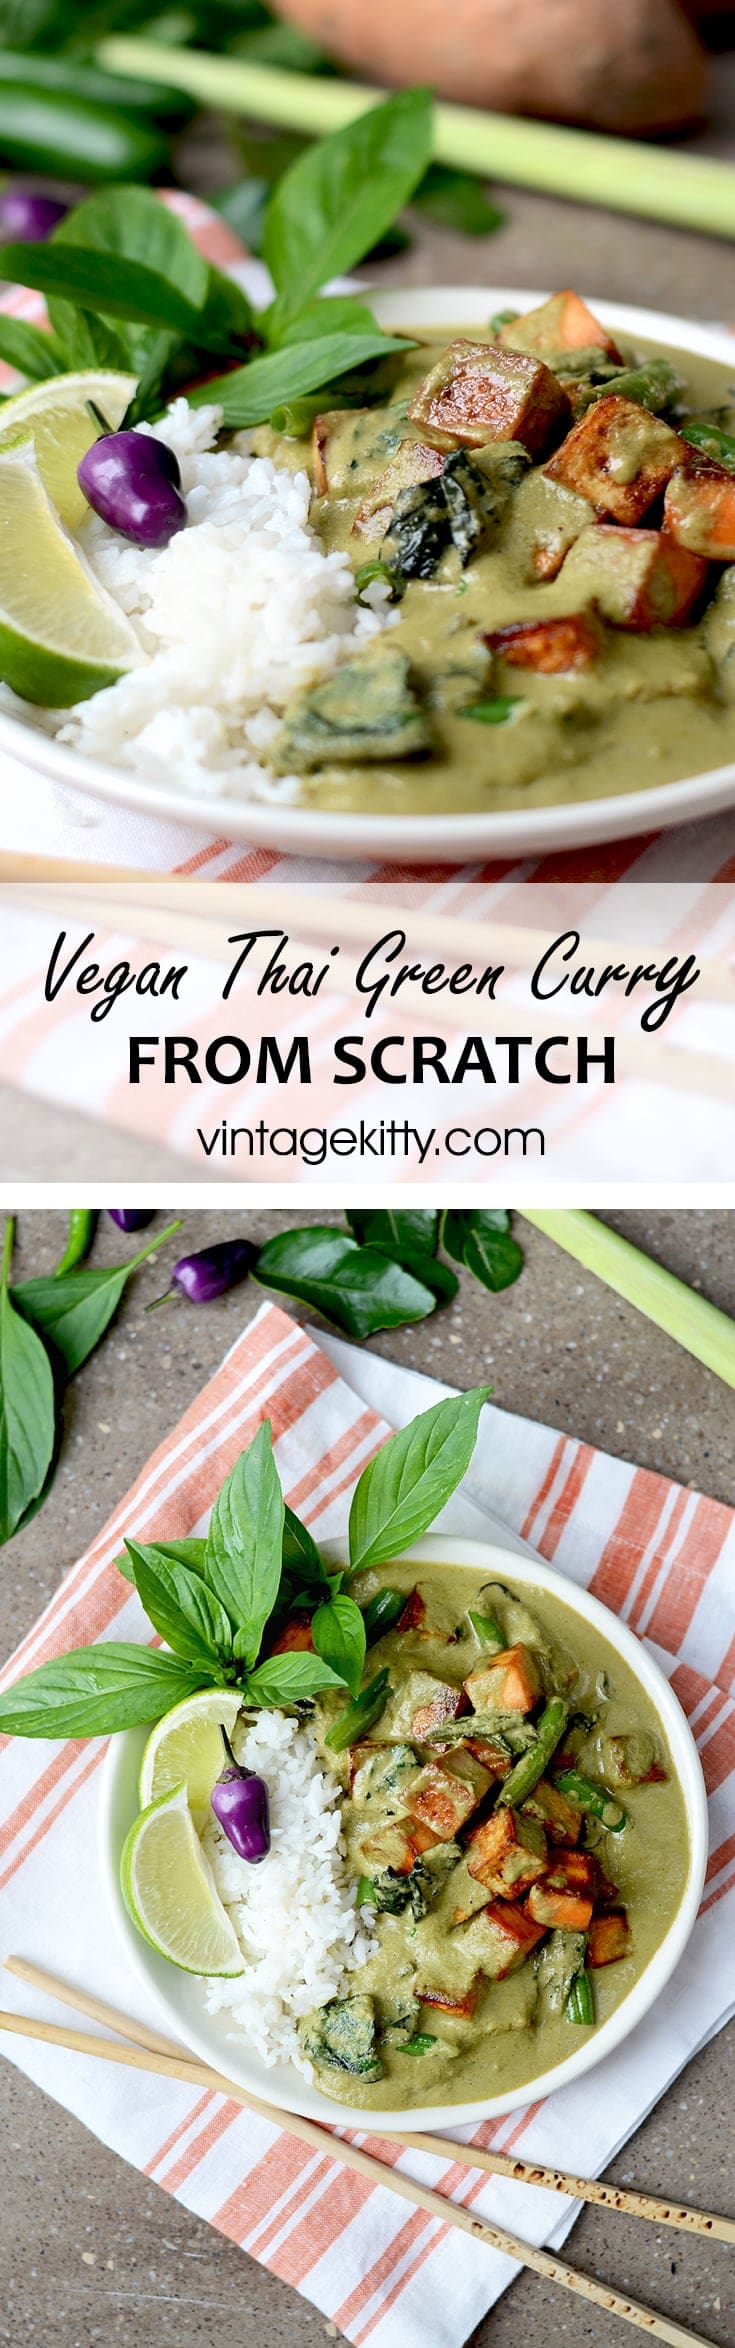 Vegan Thai Green Curry Pin - Vegan Thai Green Curry from scratch </br> with Sweet Potatoes, Tofu, and Green Beans